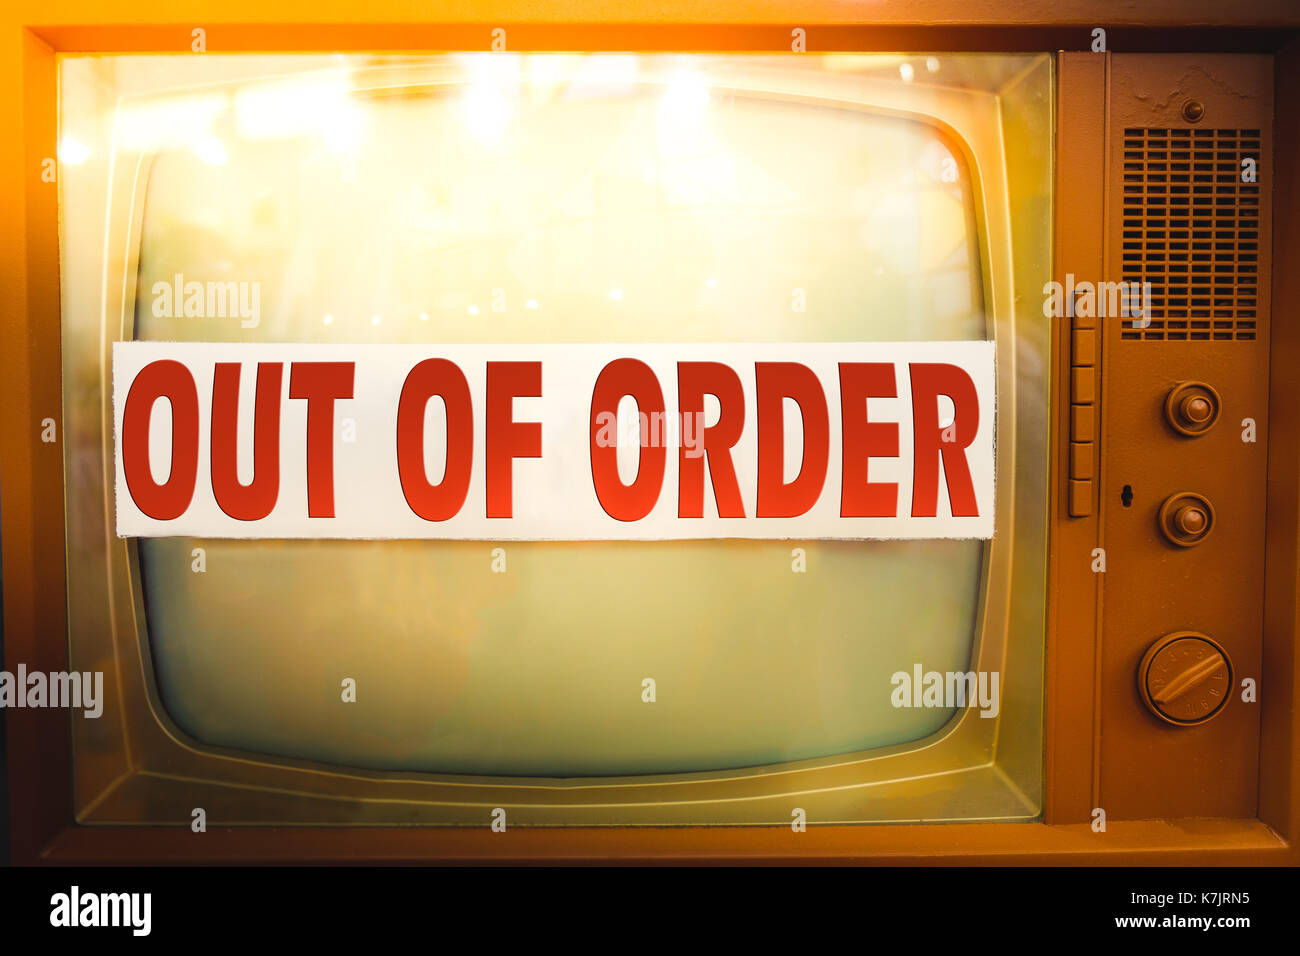 out of order television maintenance old tv label vintage obsolete device - Stock Image